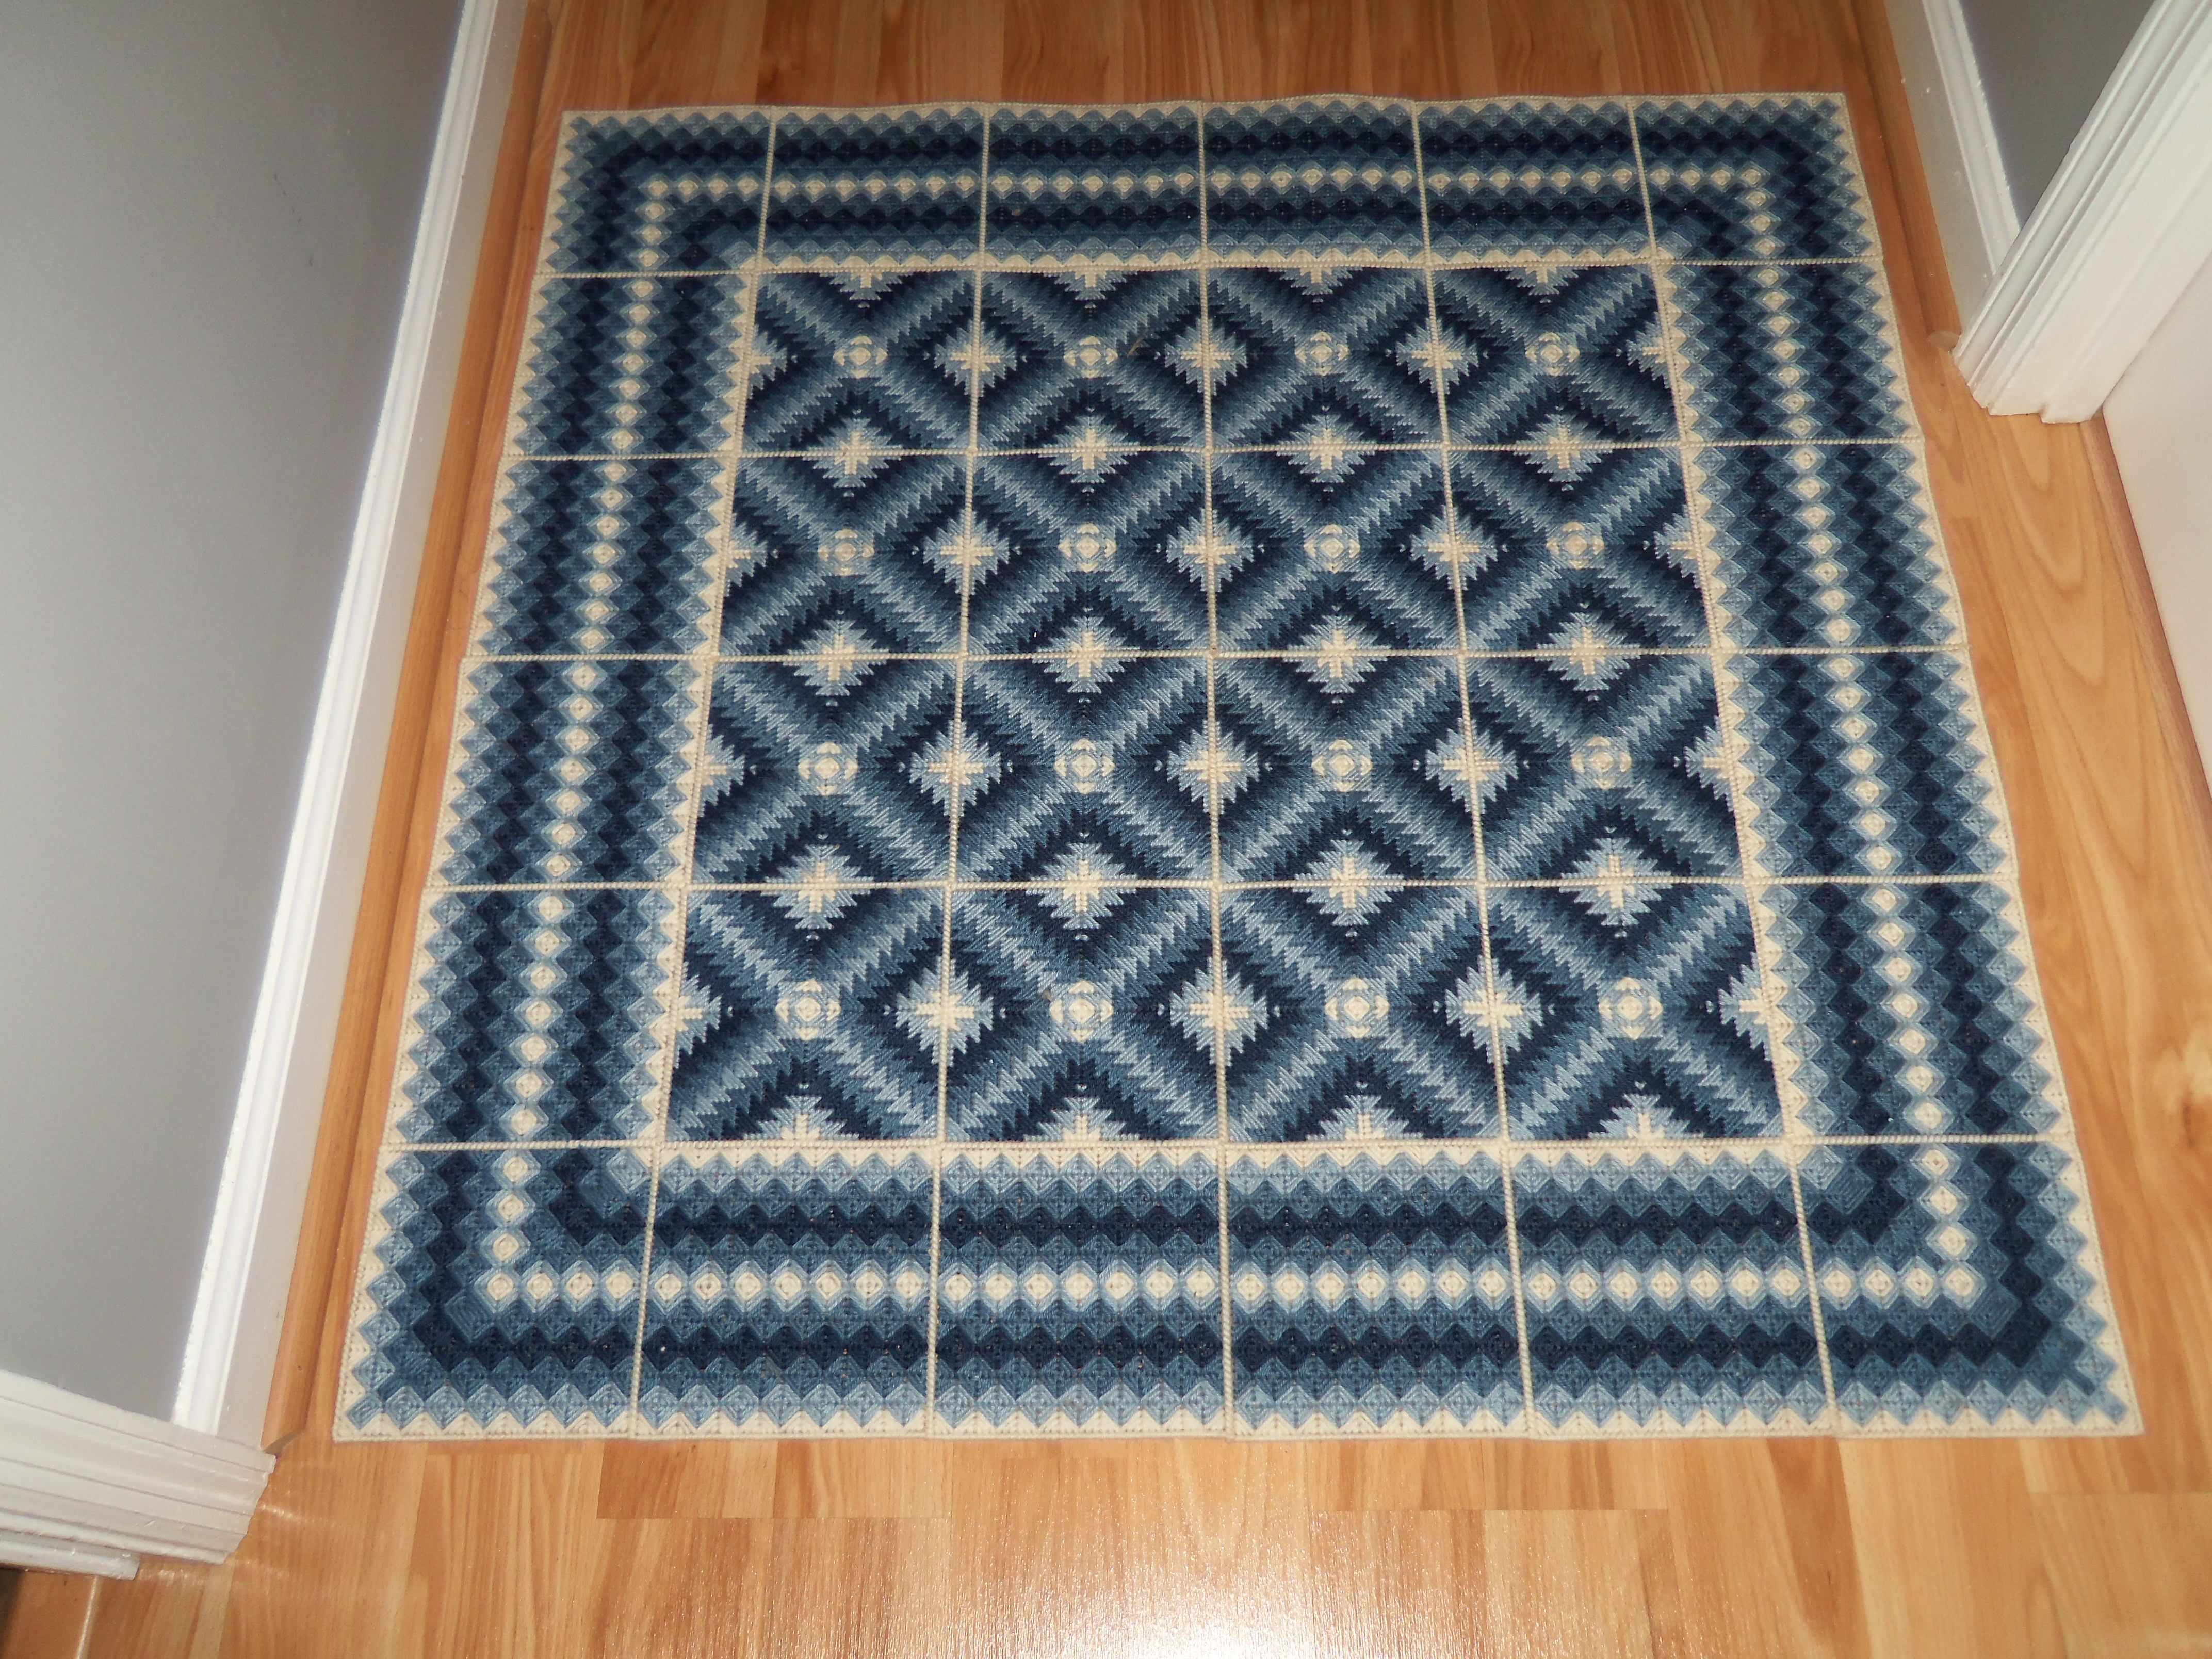 Rug Made With Plastic Canvas And Yarn Plastic Canvas Patterns Plastic Canvas Crafts Canvas Crafts